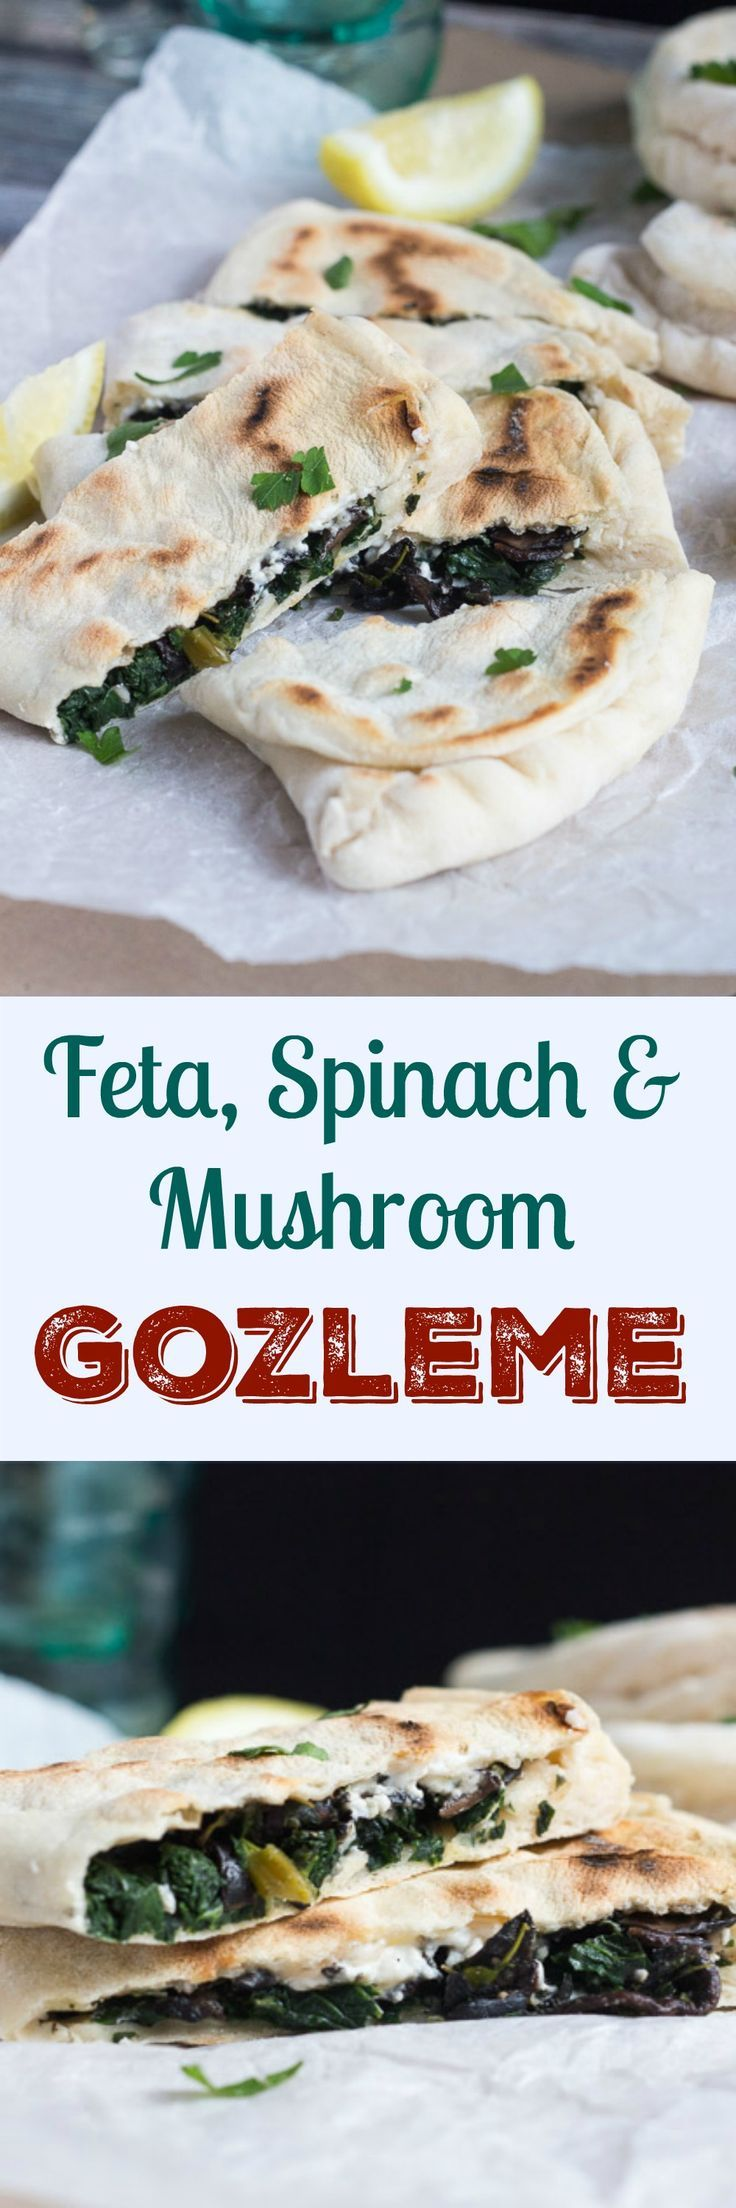 Feta, Spinach and Mushroom Gozleme. With a few basics on hand, these come…